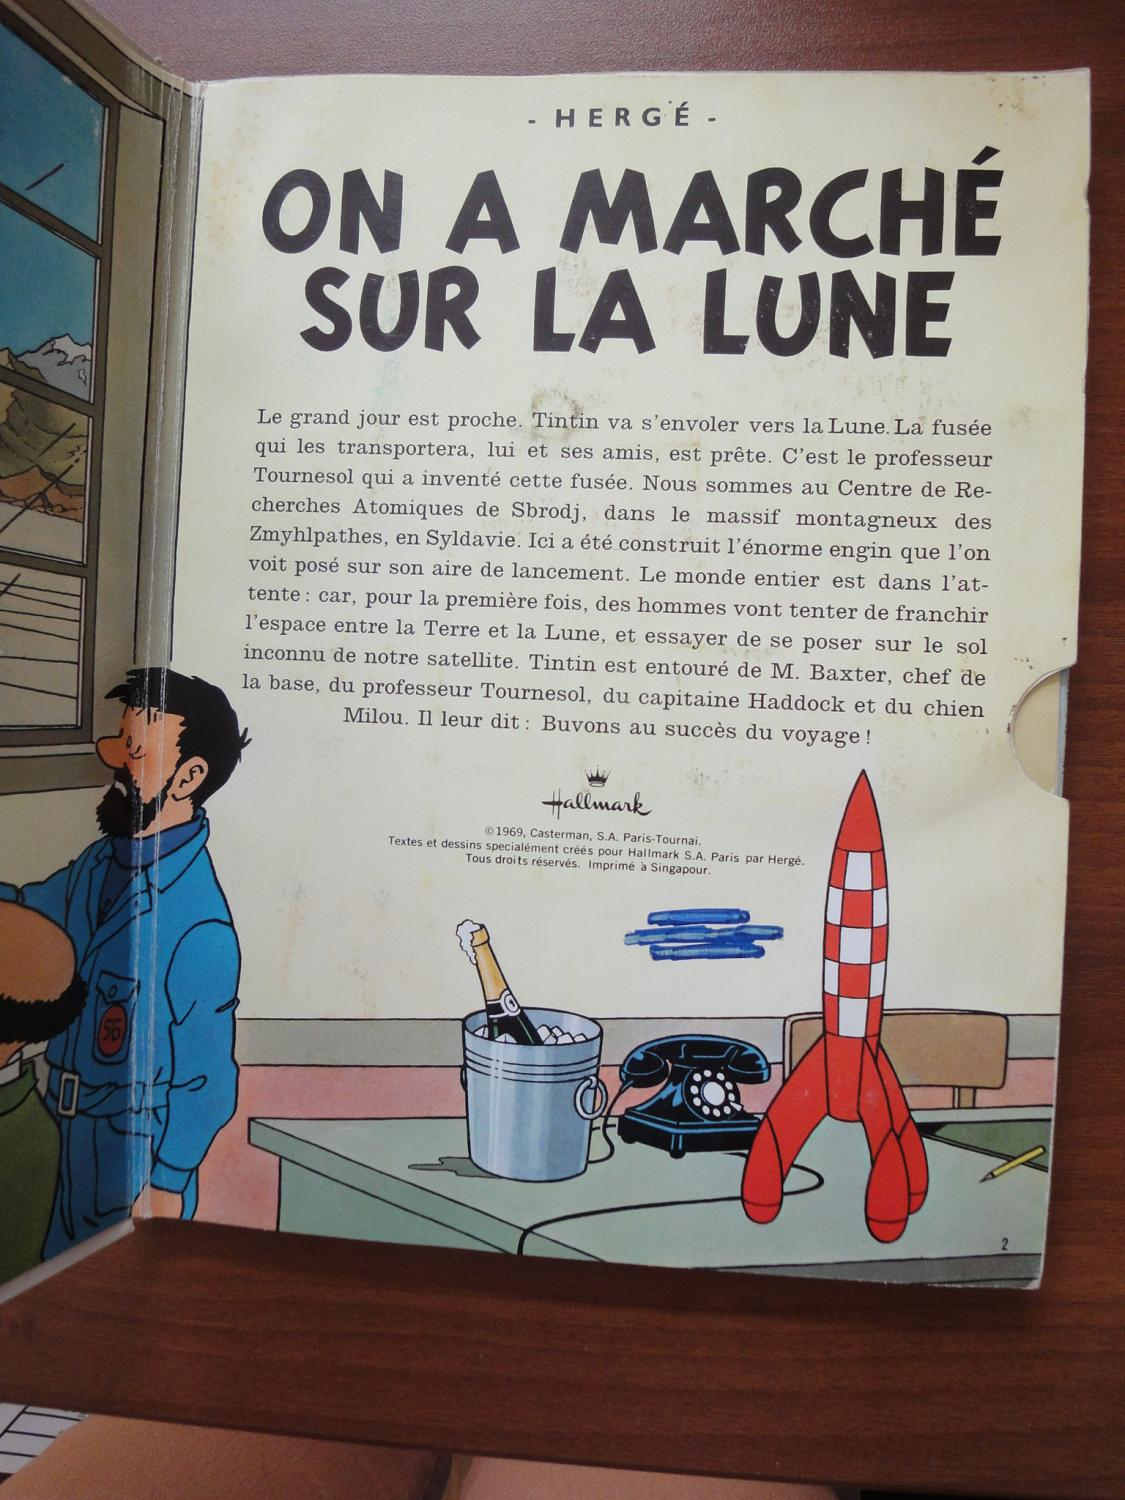 Tintin Pop-Up Book in French: La Collection Pop-Hop Tintin (Un Livre Anime Tintin) - On a Marche ...